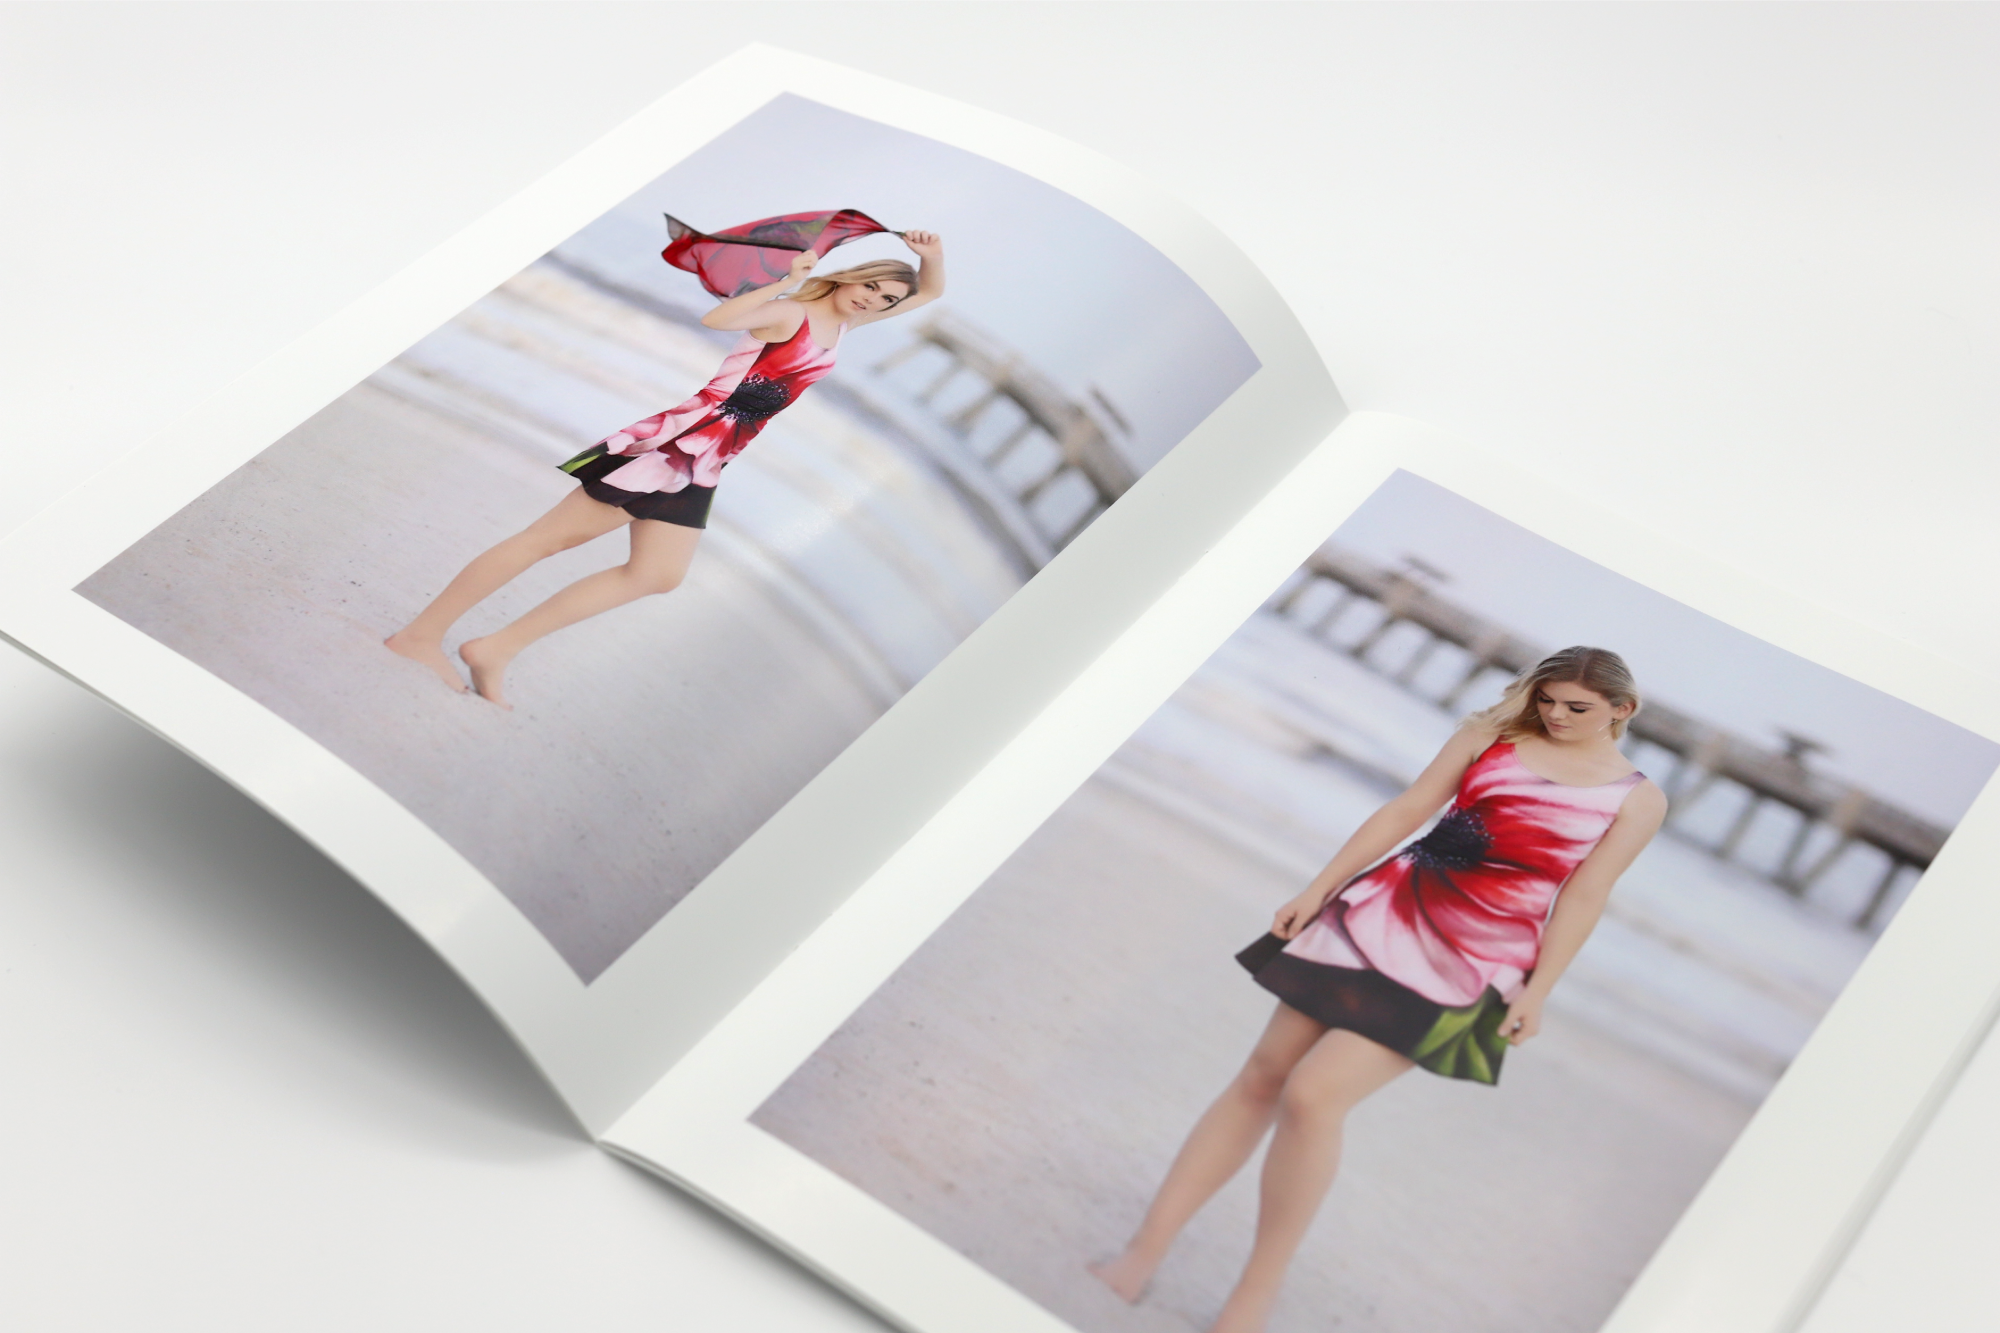 Why You Should Make an Apparel Catalog to Showcase Your Clothing Line